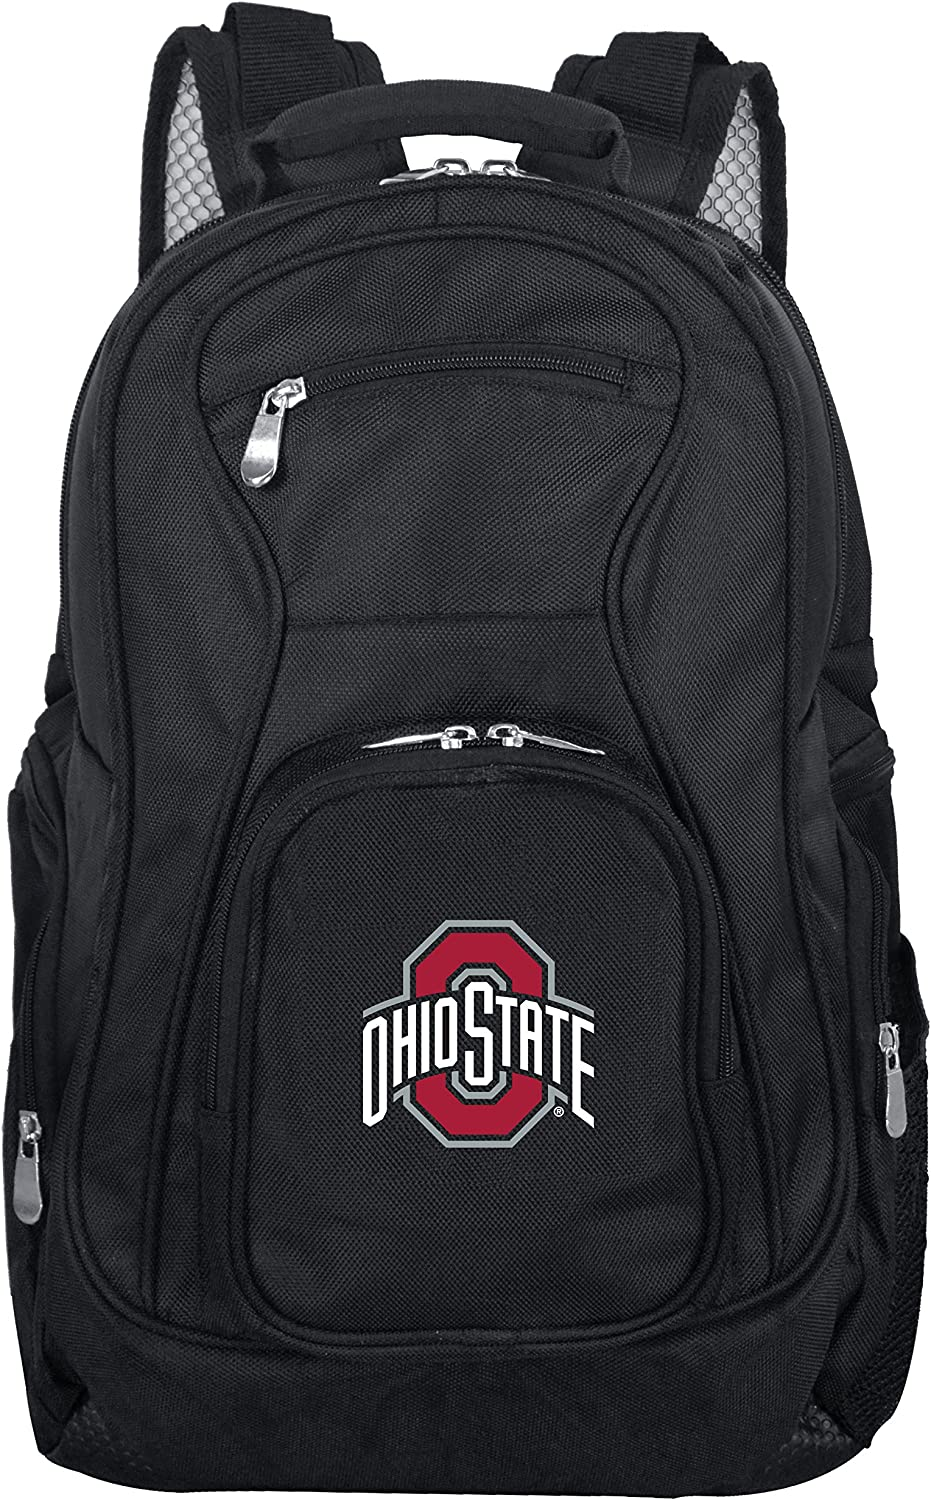 NCAA Laptop Backpack Classic Black 19-inches SALENEW very popular!